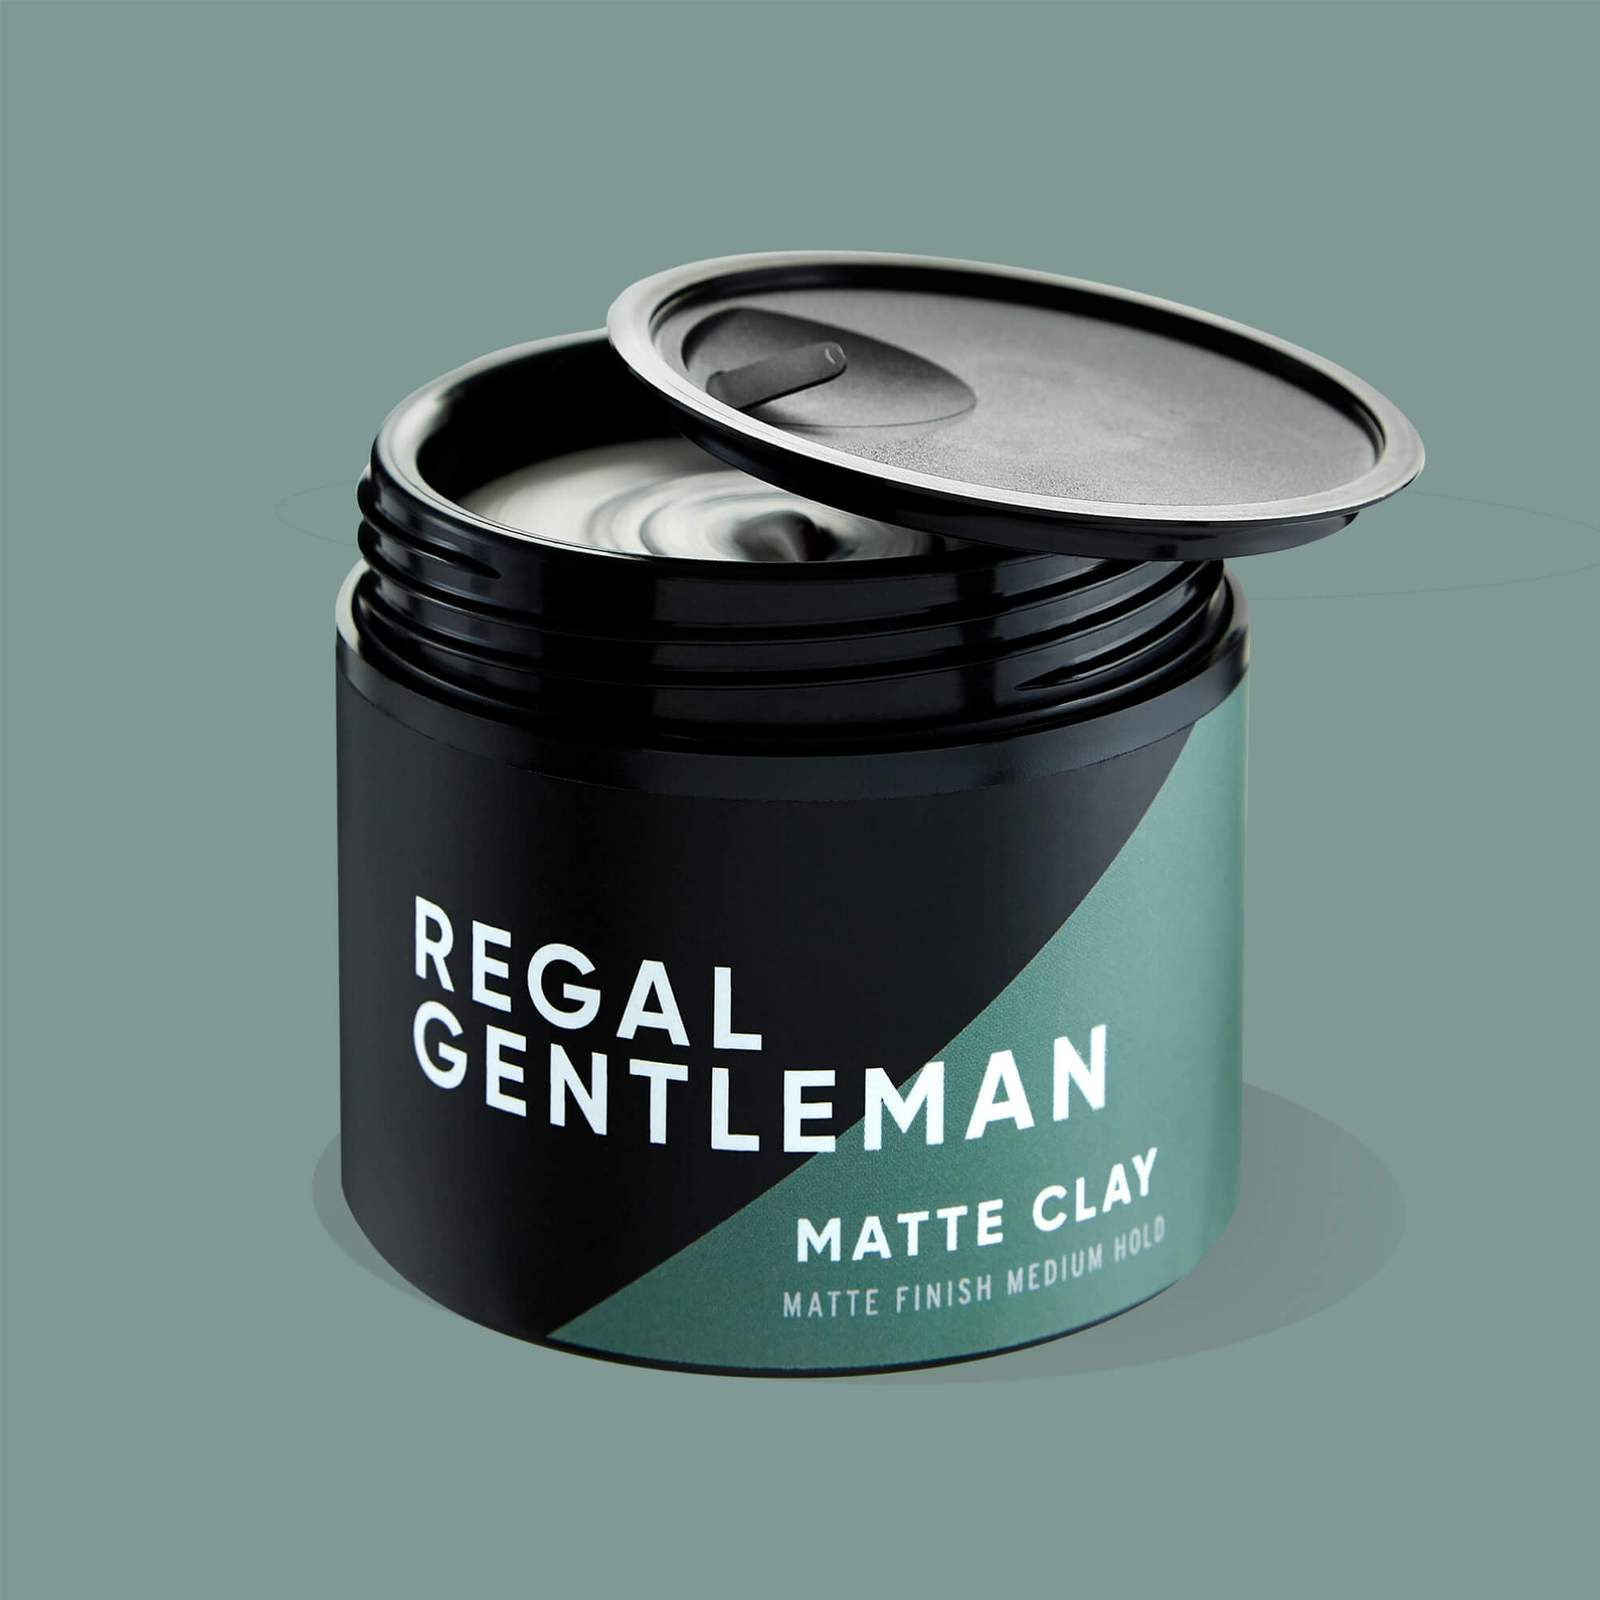 Regal Gentleman Matte Clay